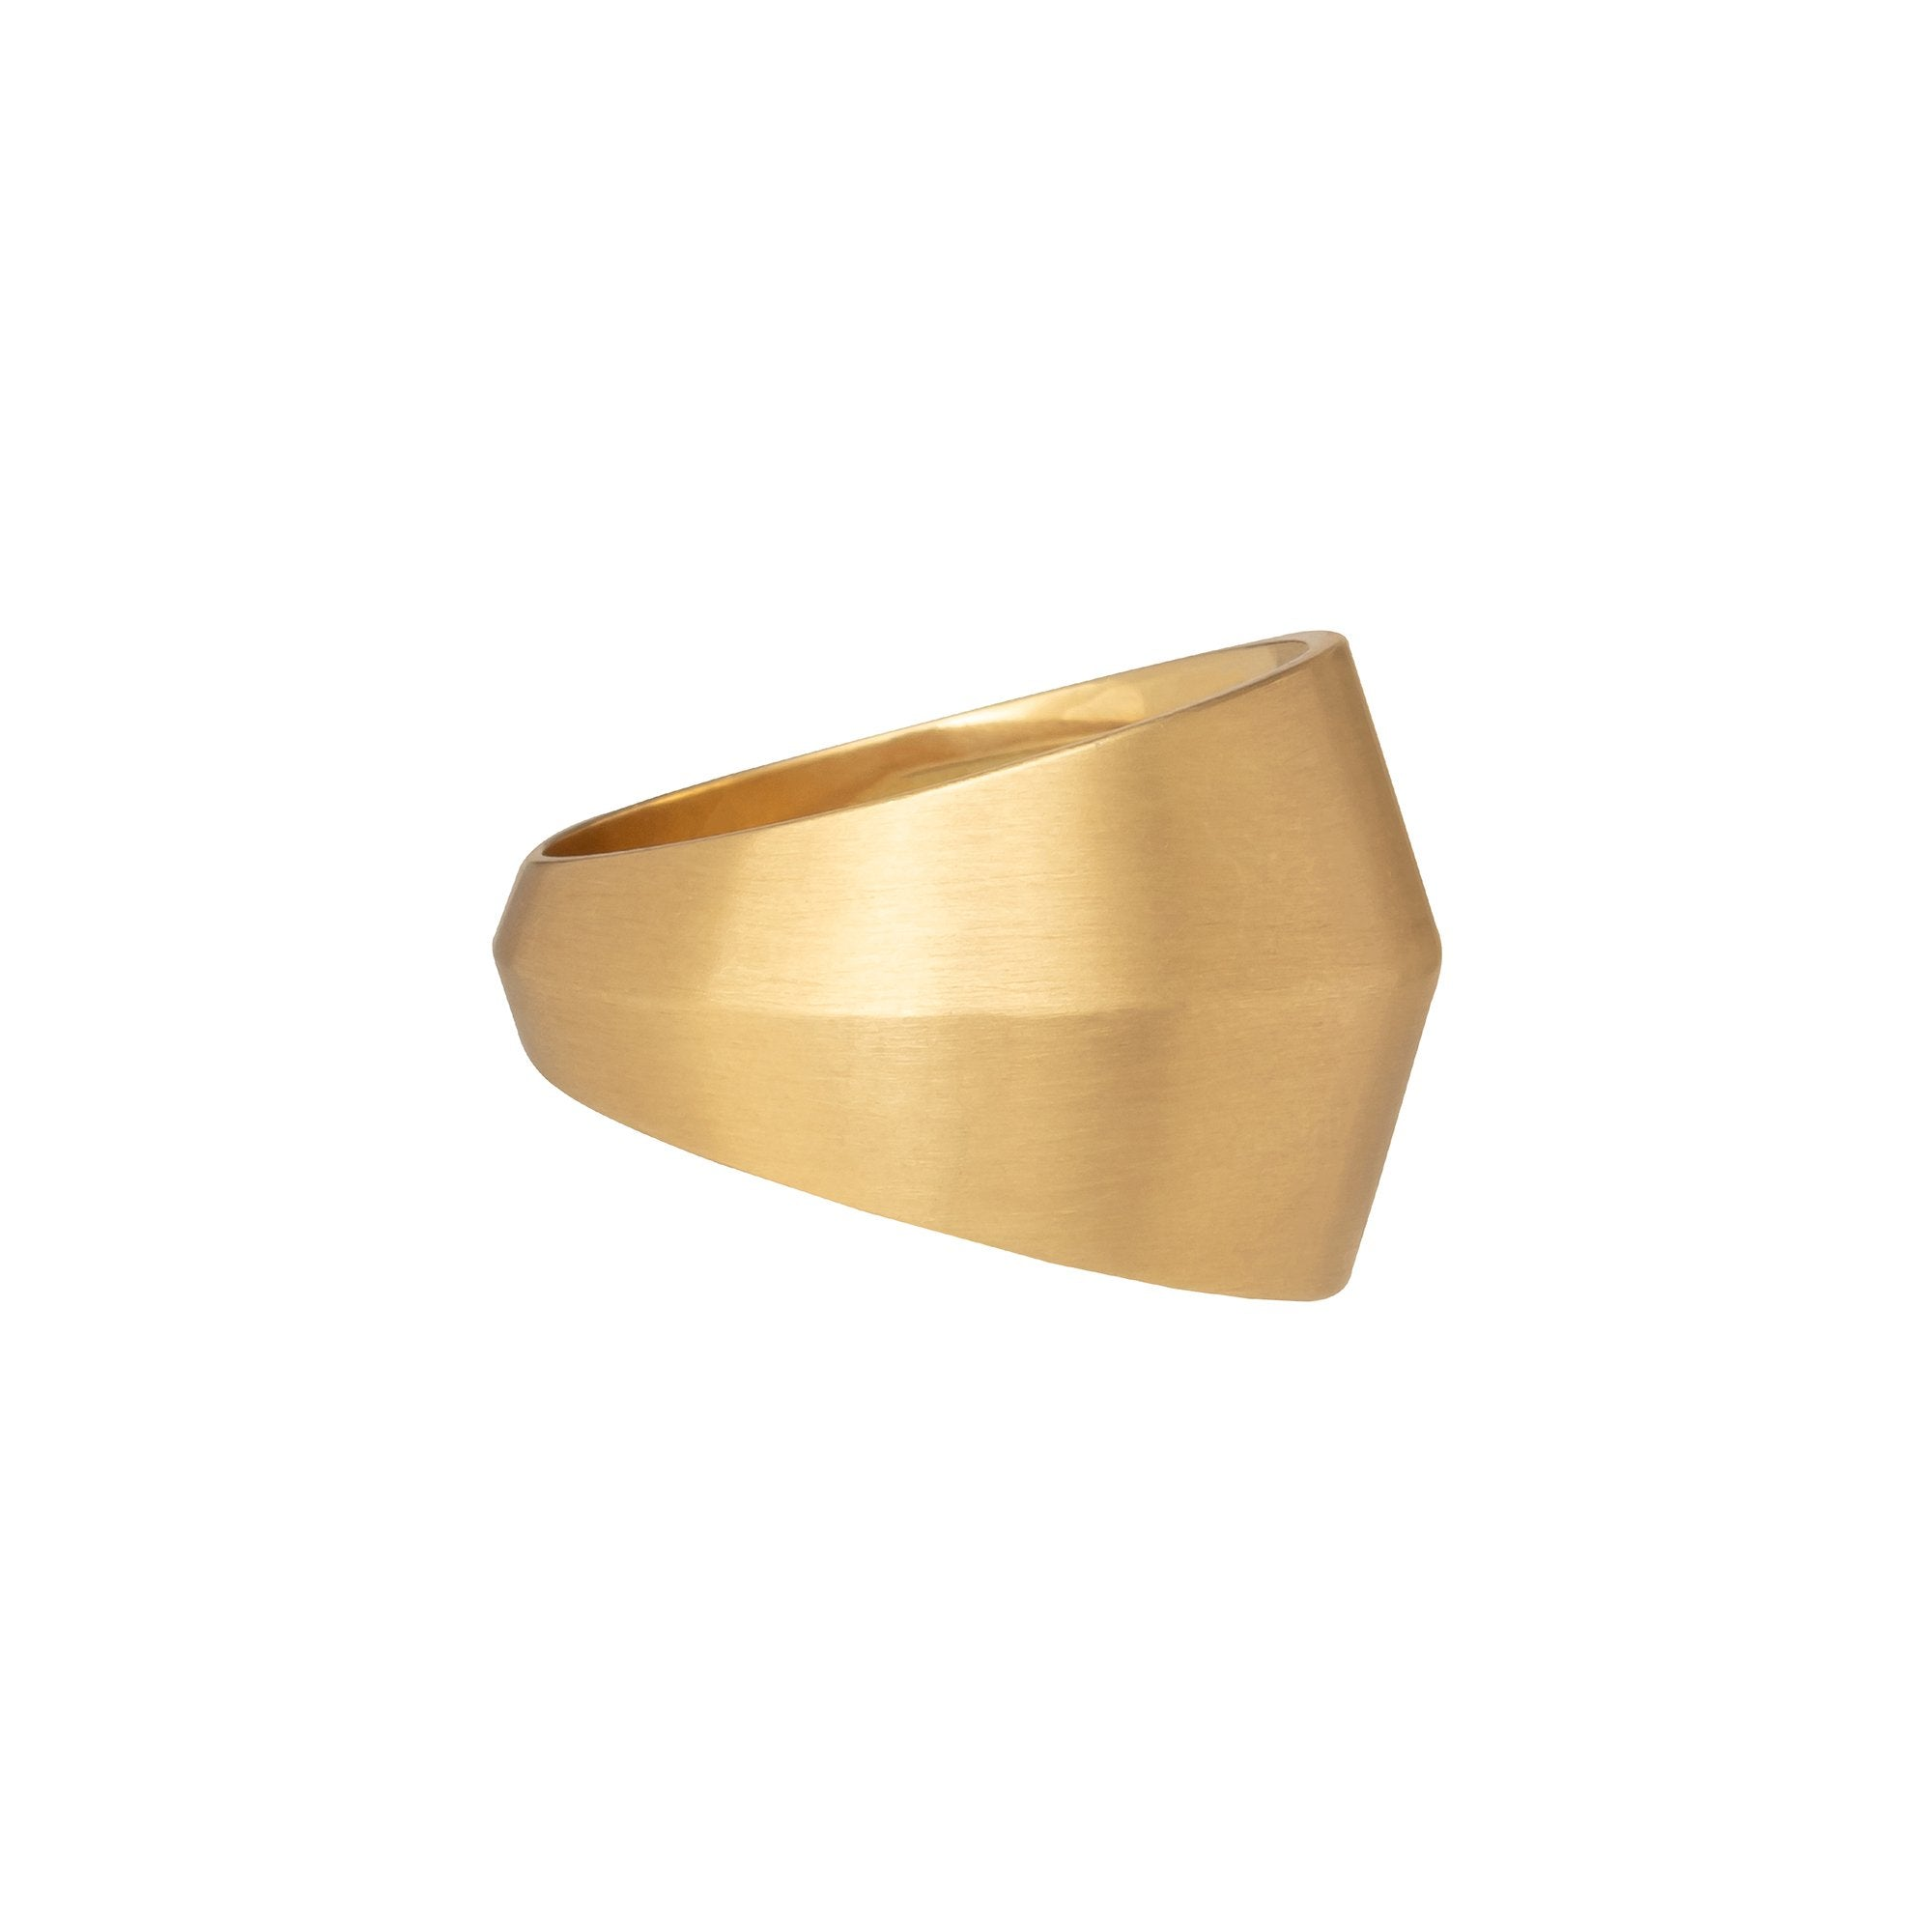 Gold Band Ring - Marisa Klass - Rings | Broken English Jewelry